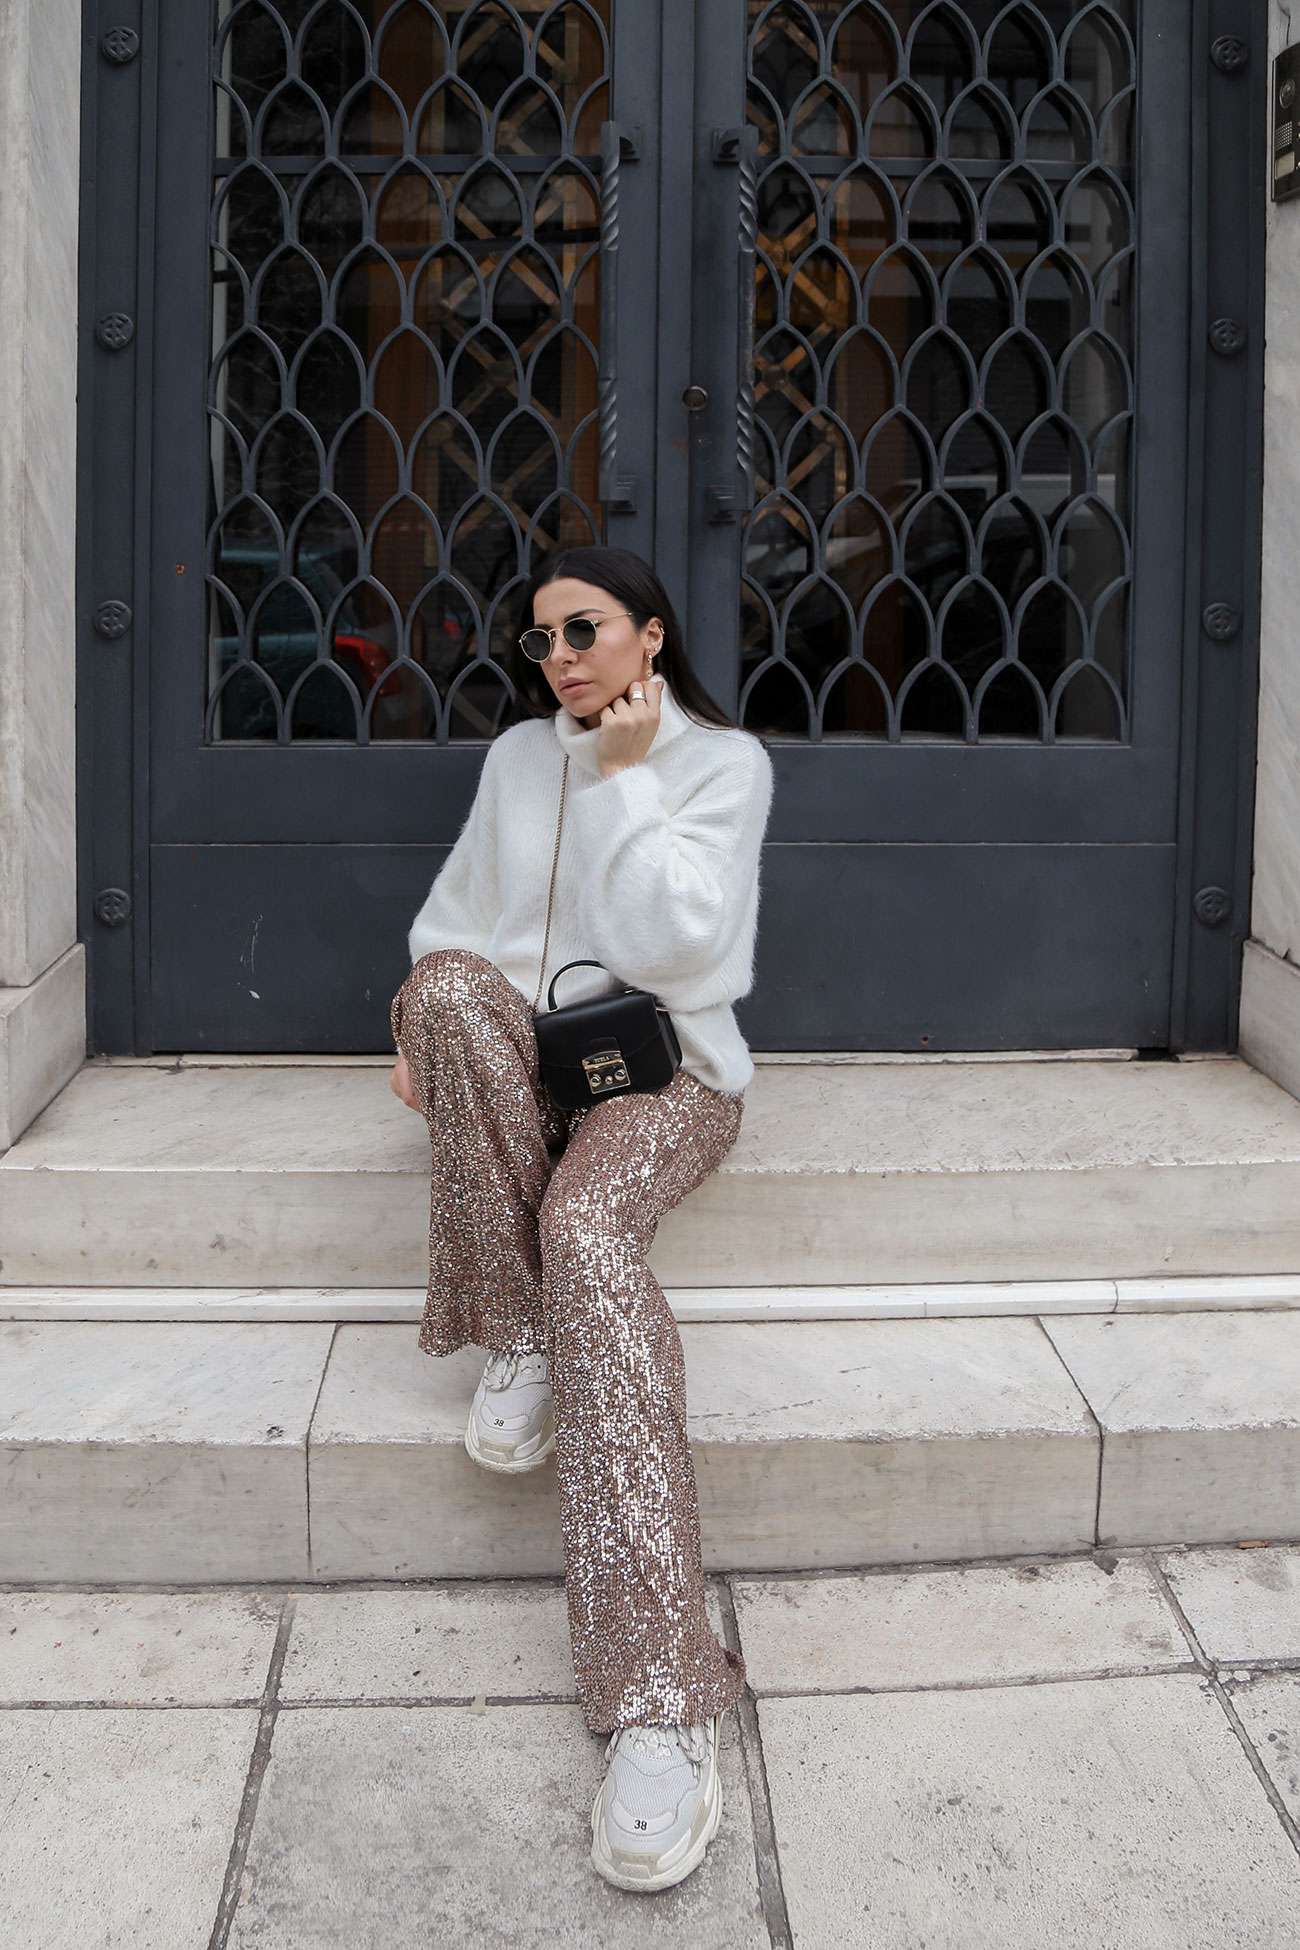 How To Wear Sequins in the daytime - Stella Asteria fashion & lifestyle blogger